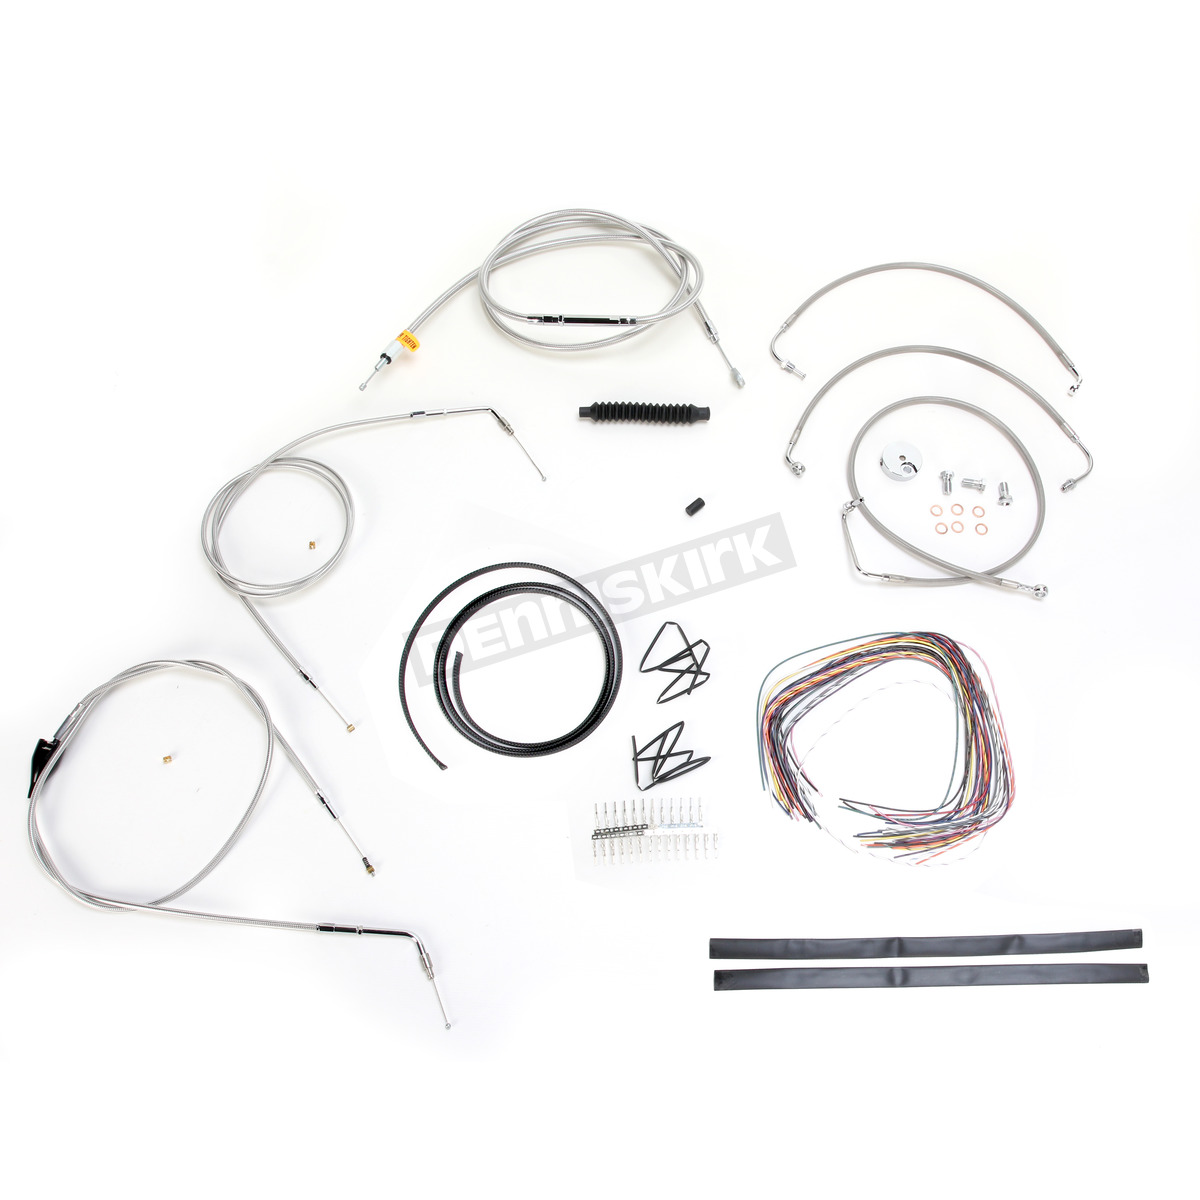 LA Choppers Stainless Braided Handlebar Cable and Brake